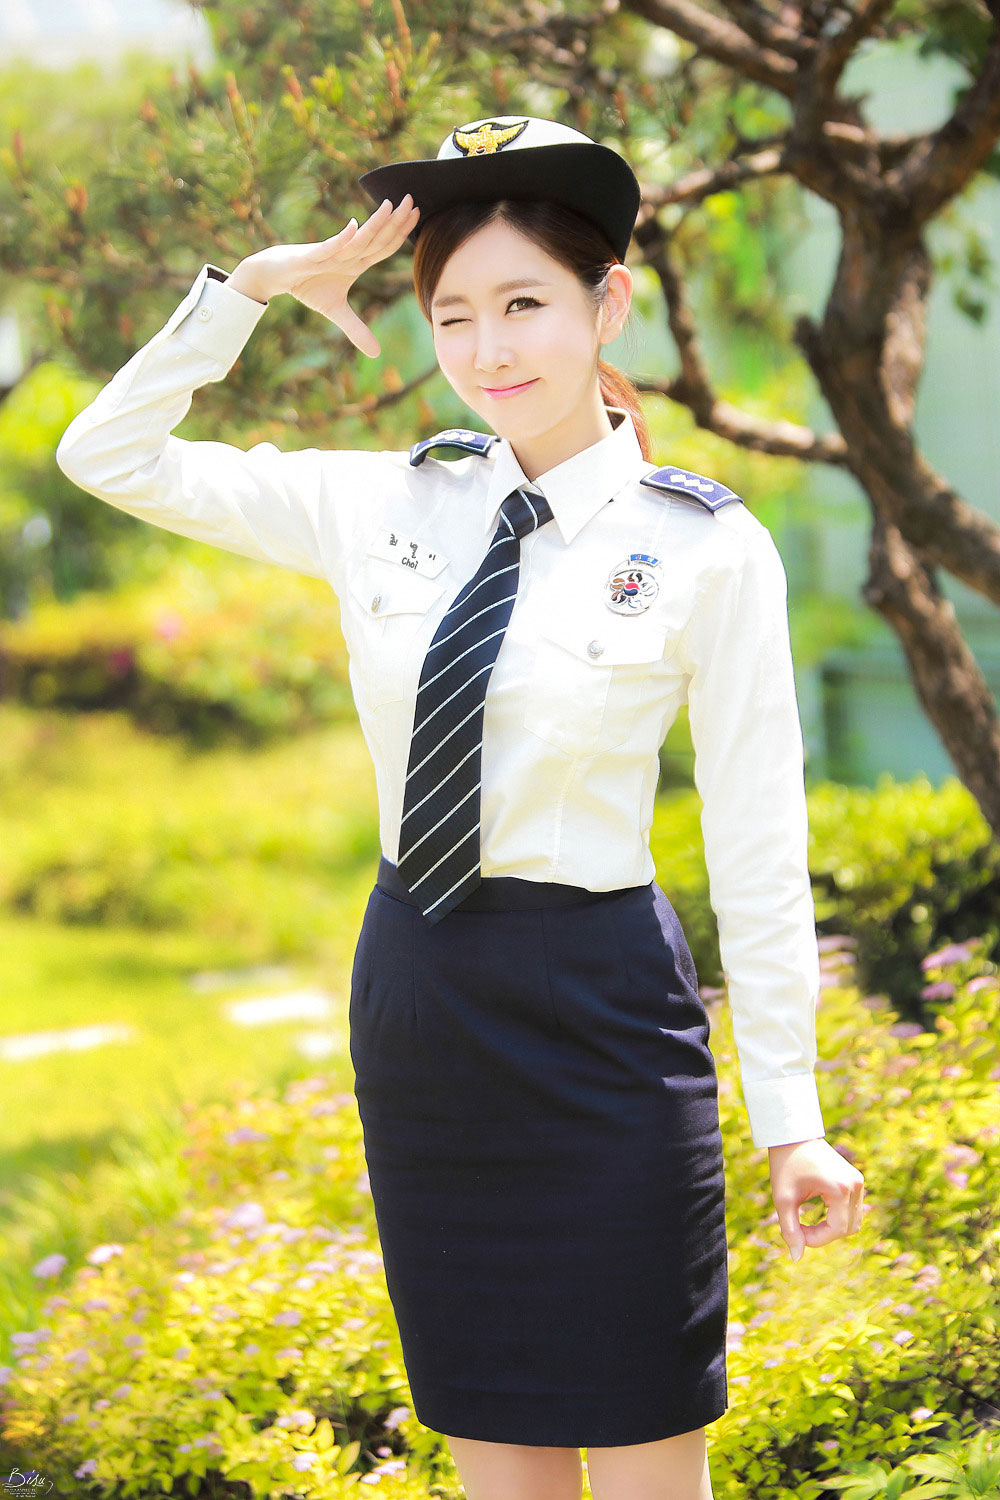 Choi Byul I Korean police uniform